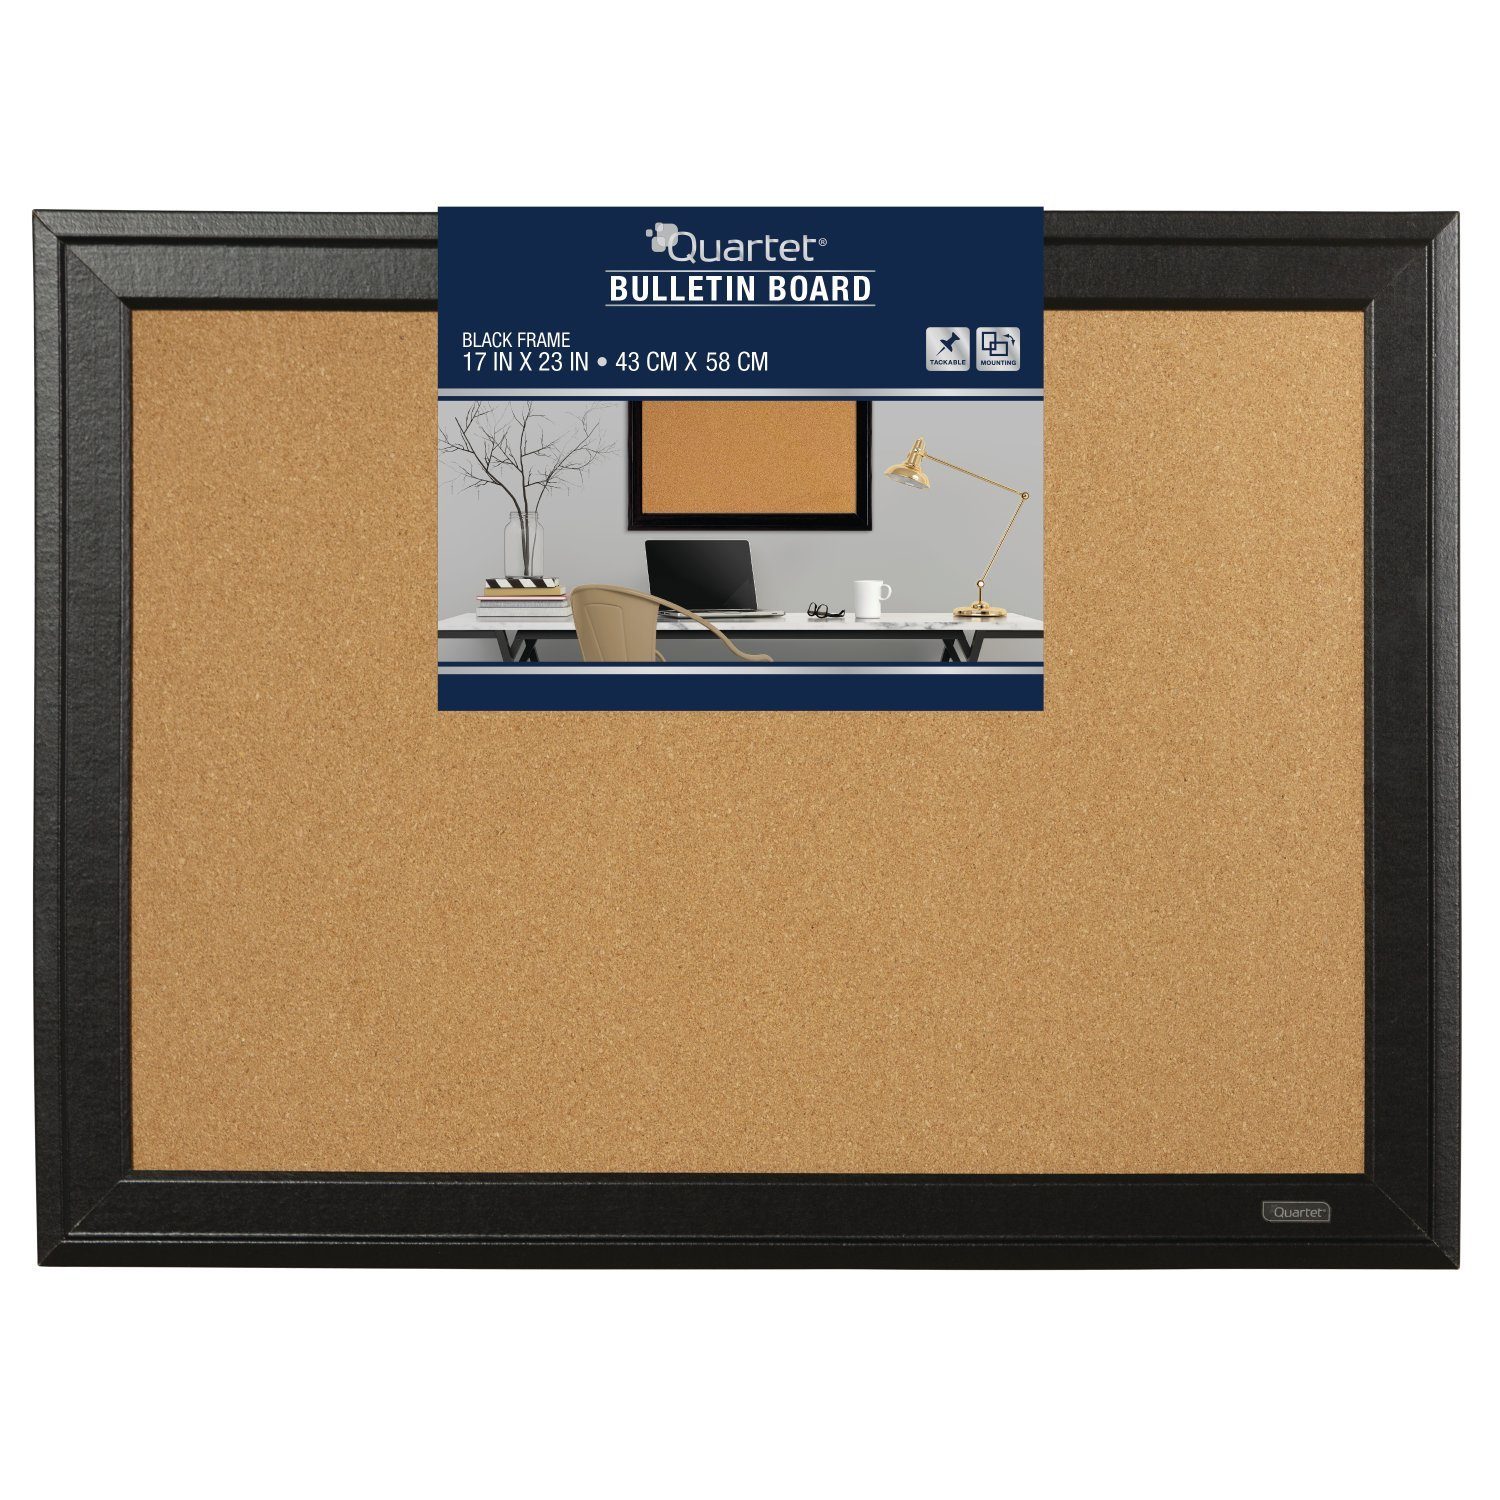 Amazon quartet cork bulletin board 11 x 17 inches home amazon quartet cork bulletin board 11 x 17 inches home dcor corkboard black frame 79279 corkboard office products altavistaventures